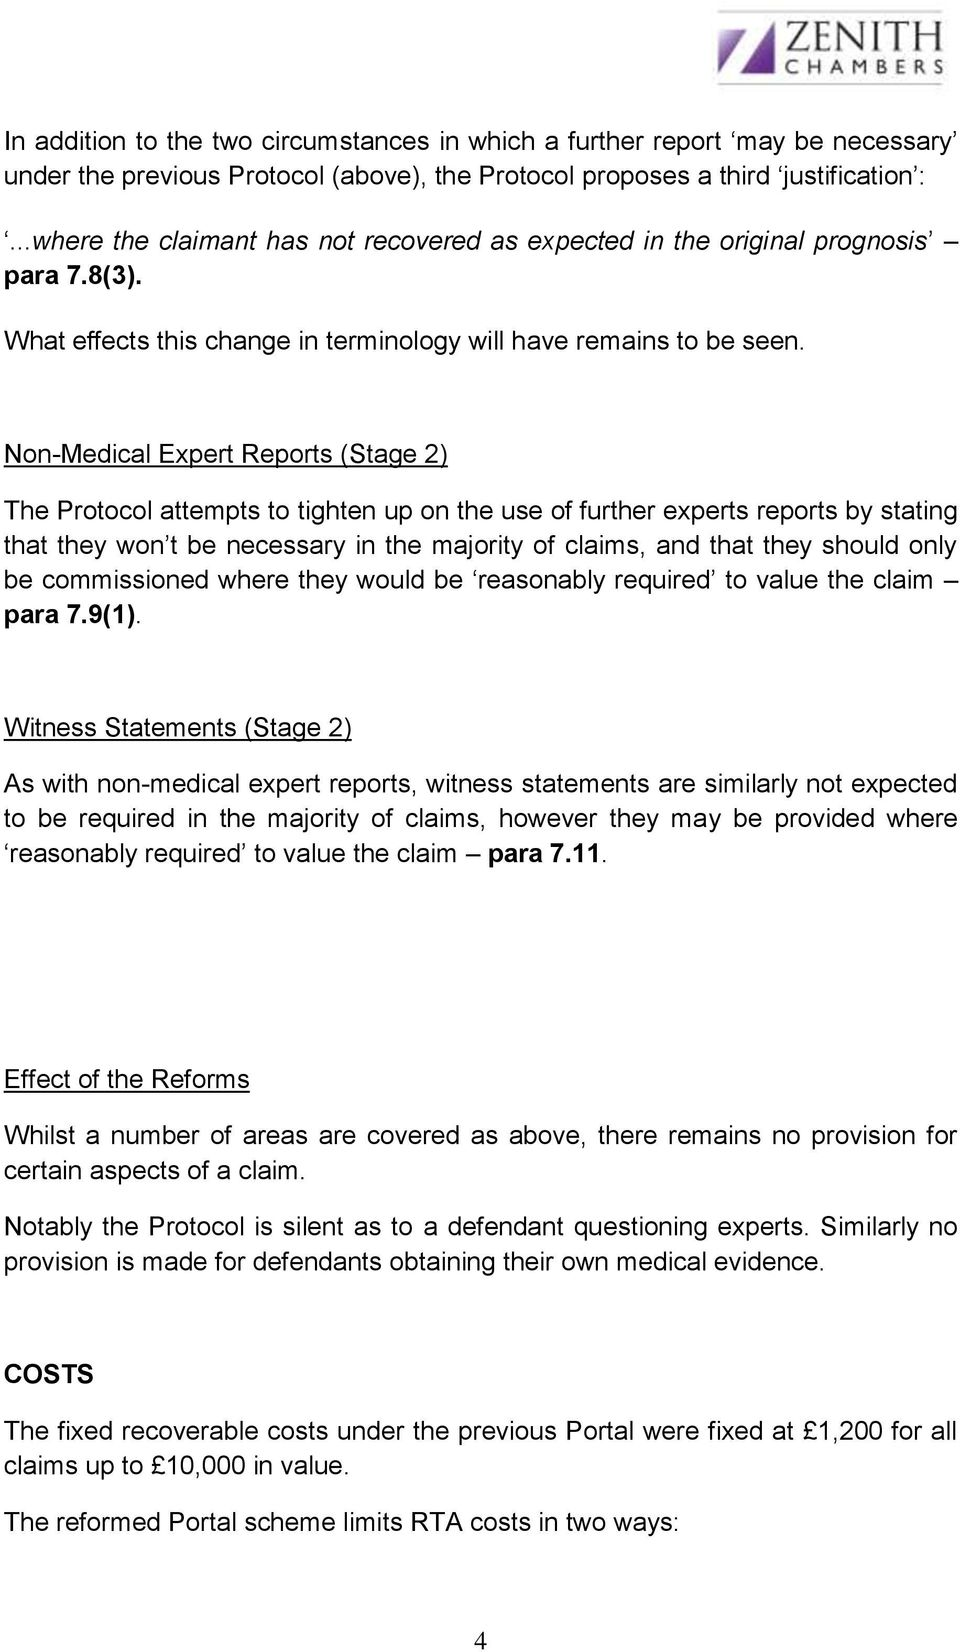 Non-Medical Expert Reports (Stage 2) The Protocol attempts to tighten up on the use of further experts reports by stating that they won t be necessary in the majority of claims, and that they should